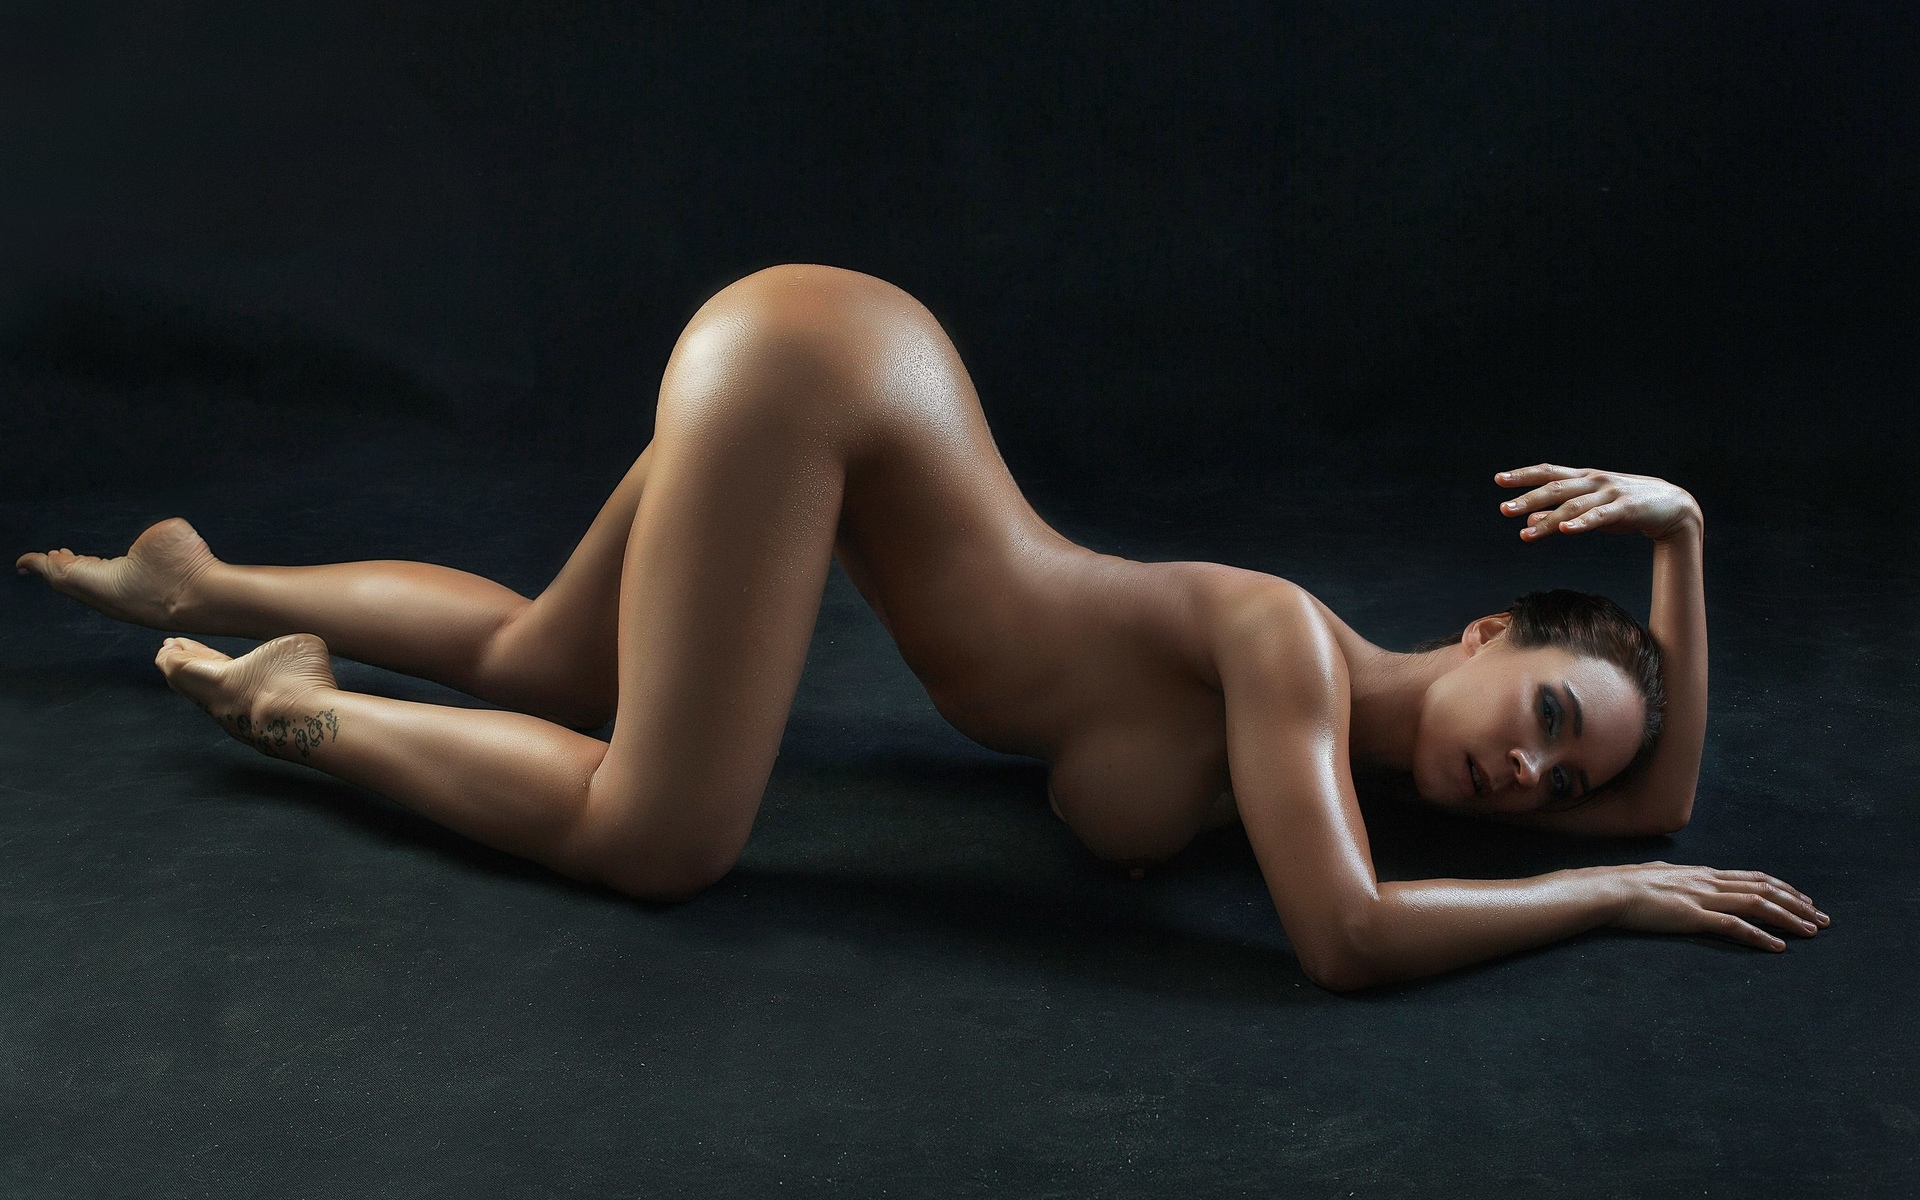 Model society photography nude art website redesign by ofa petrosyan on dribbble